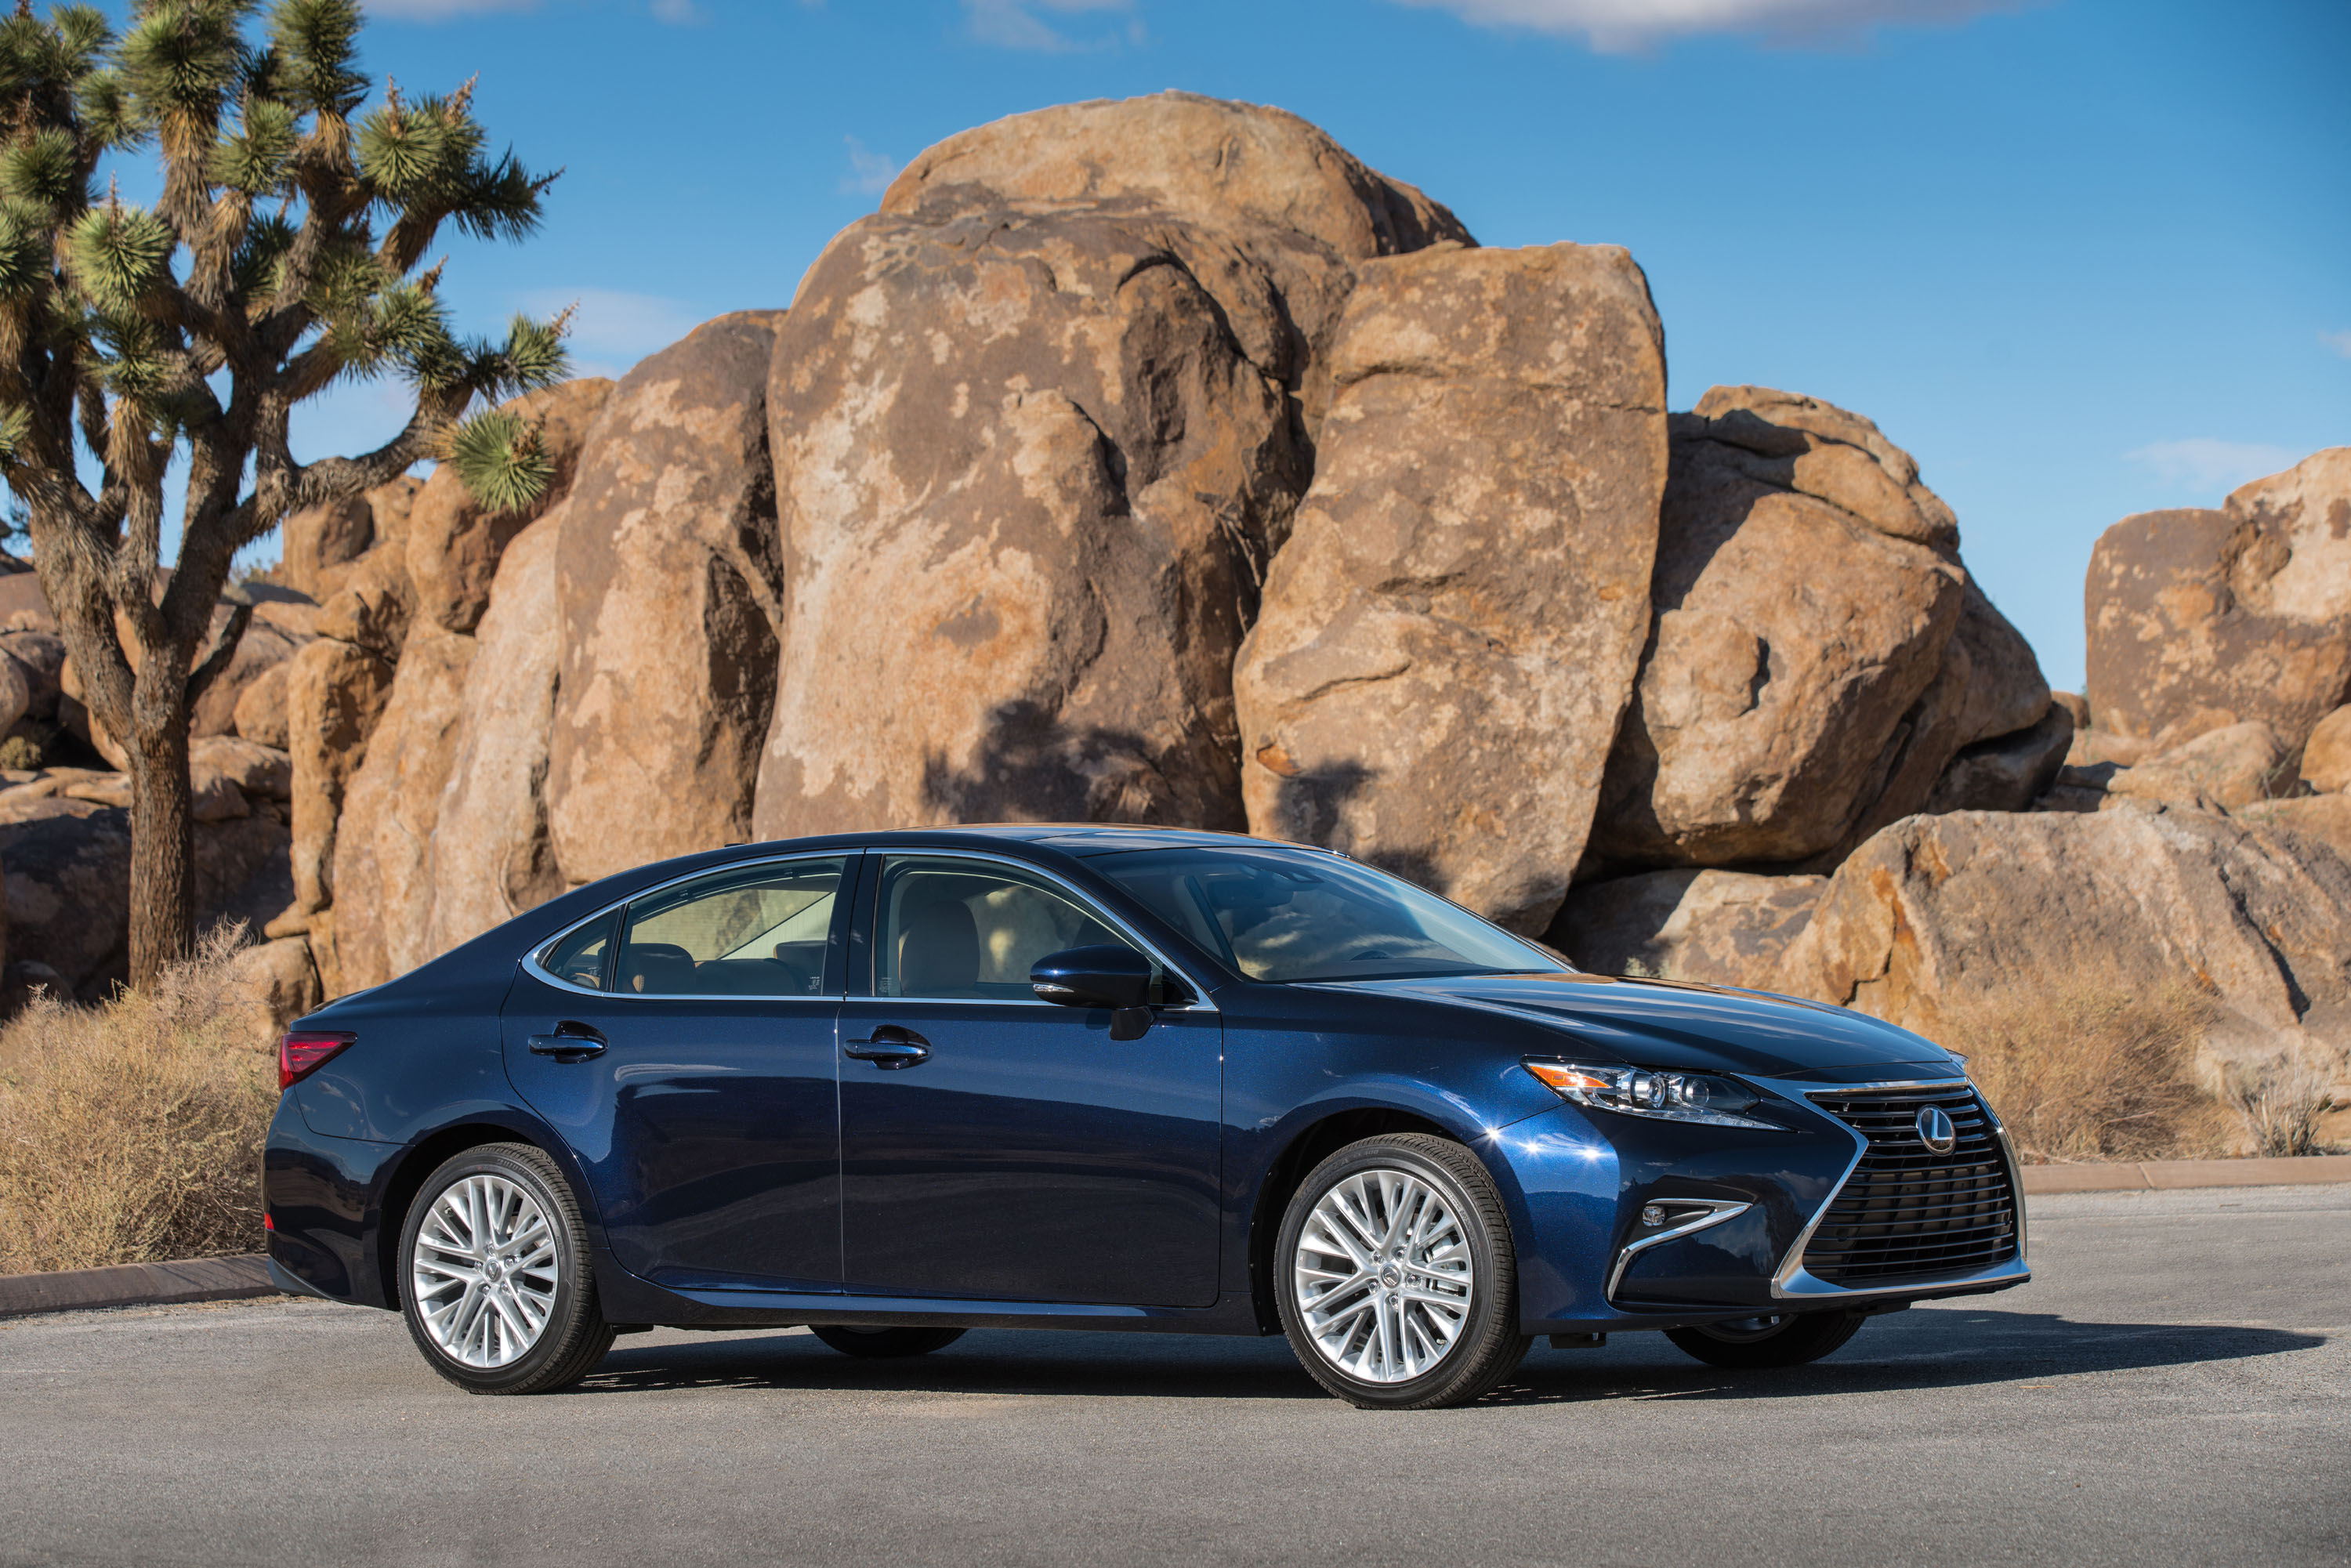 2017 Lexus ES Review, Ratings, Specs, Prices, and Photos